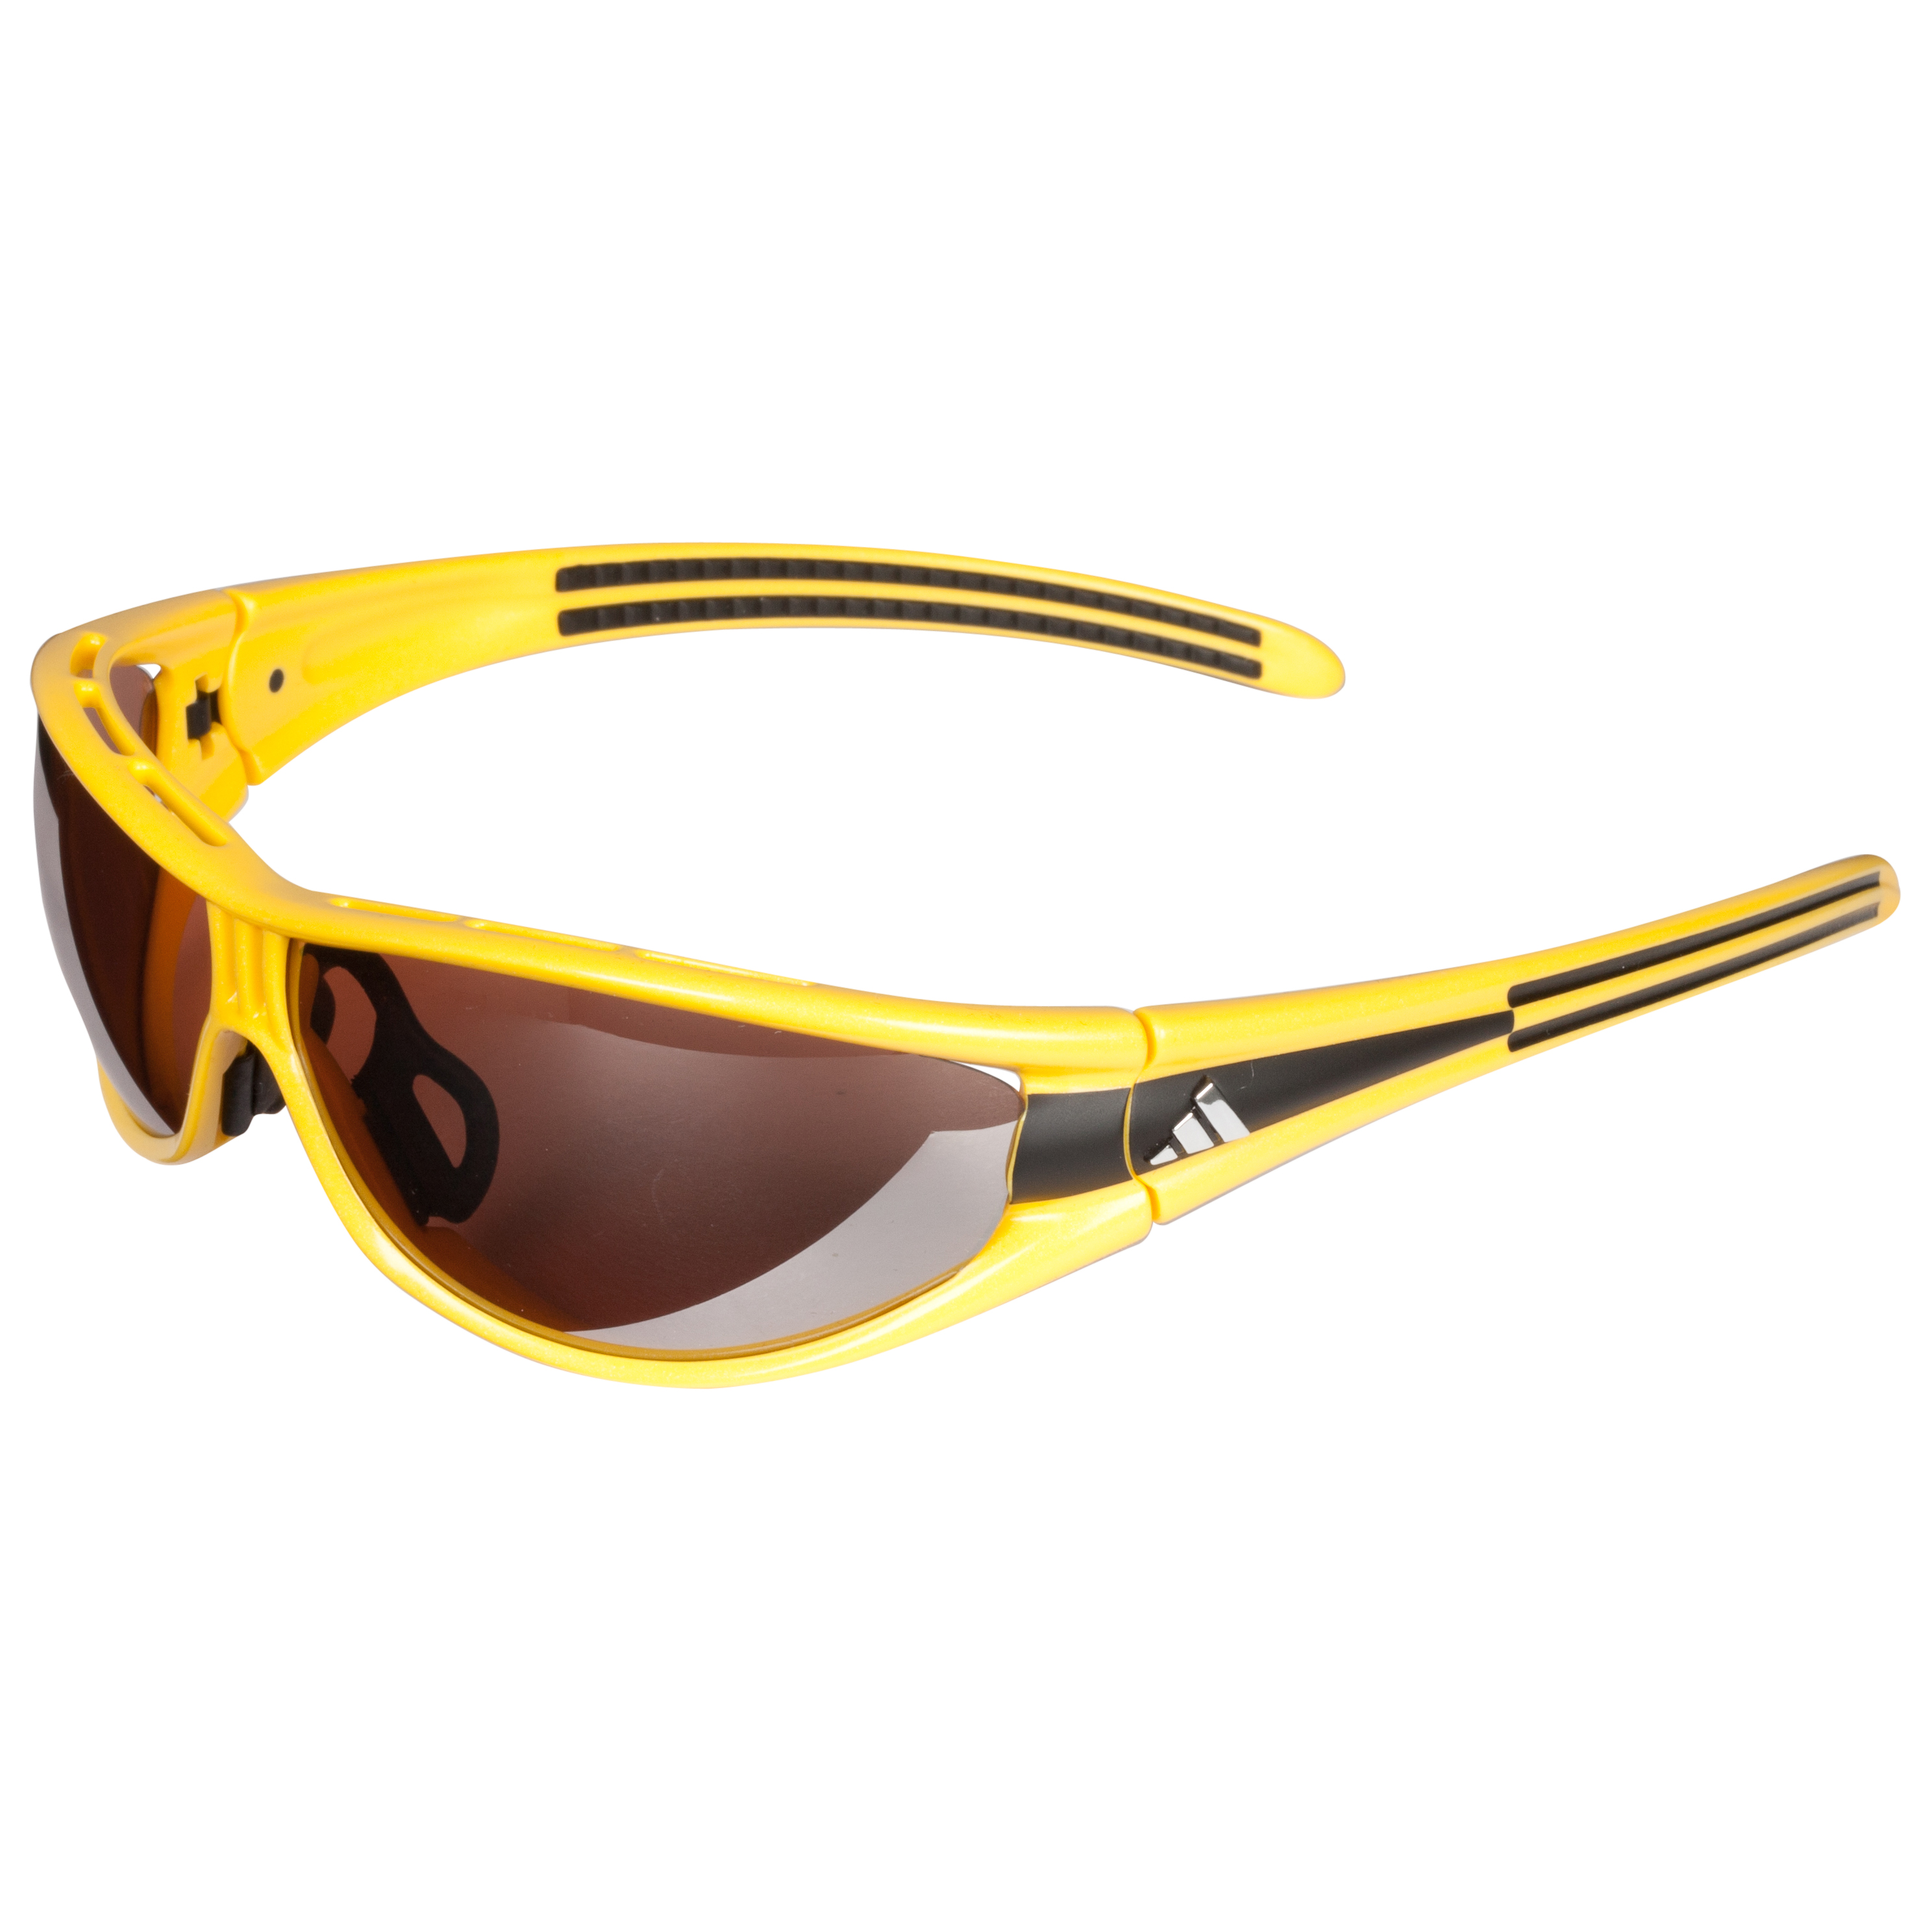 Adidas Evil Eye Sunglasses - Yellow